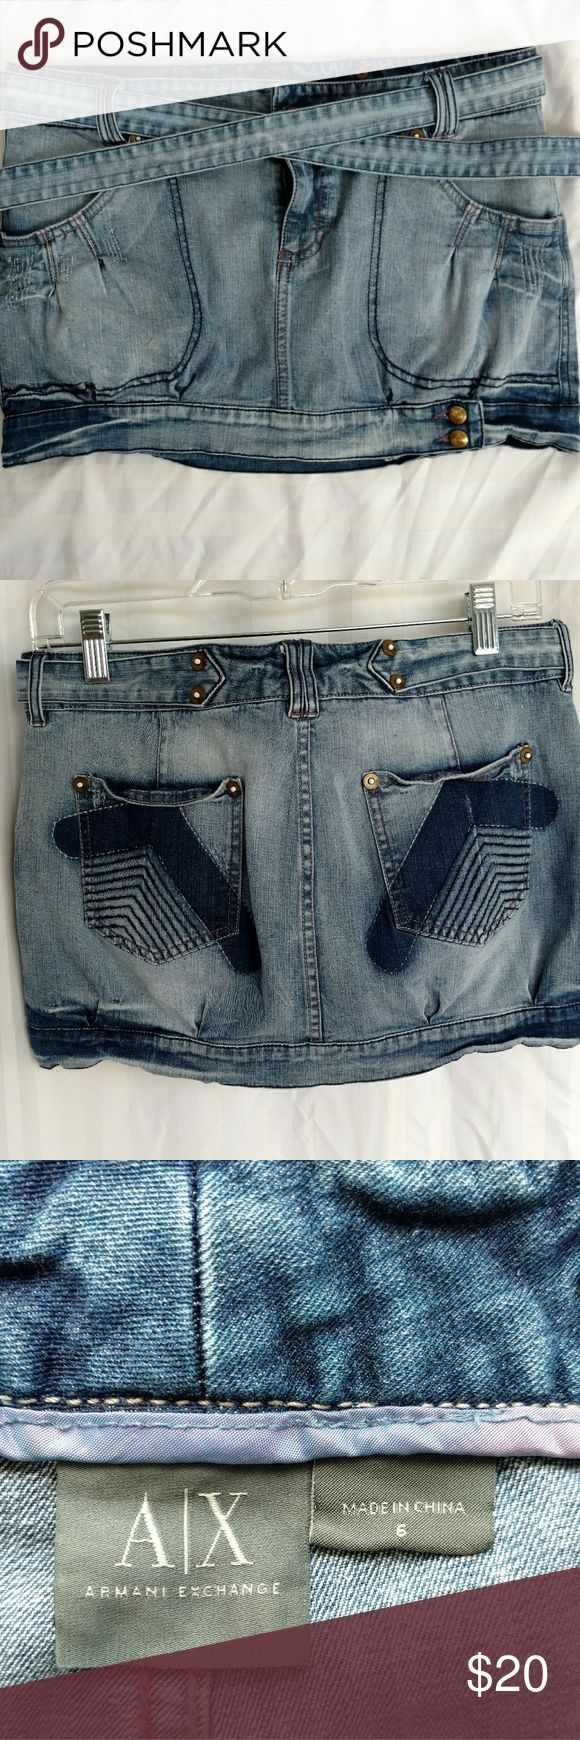 "A/X denim mini skirt Armani Exchange denim mini-skirt. Cute button embellishments at the hem. Measures approximately 16"" at the waist and 13"" long.  All offers will be considered. Thanks for looking! Armani Exchange Skirts Mini"